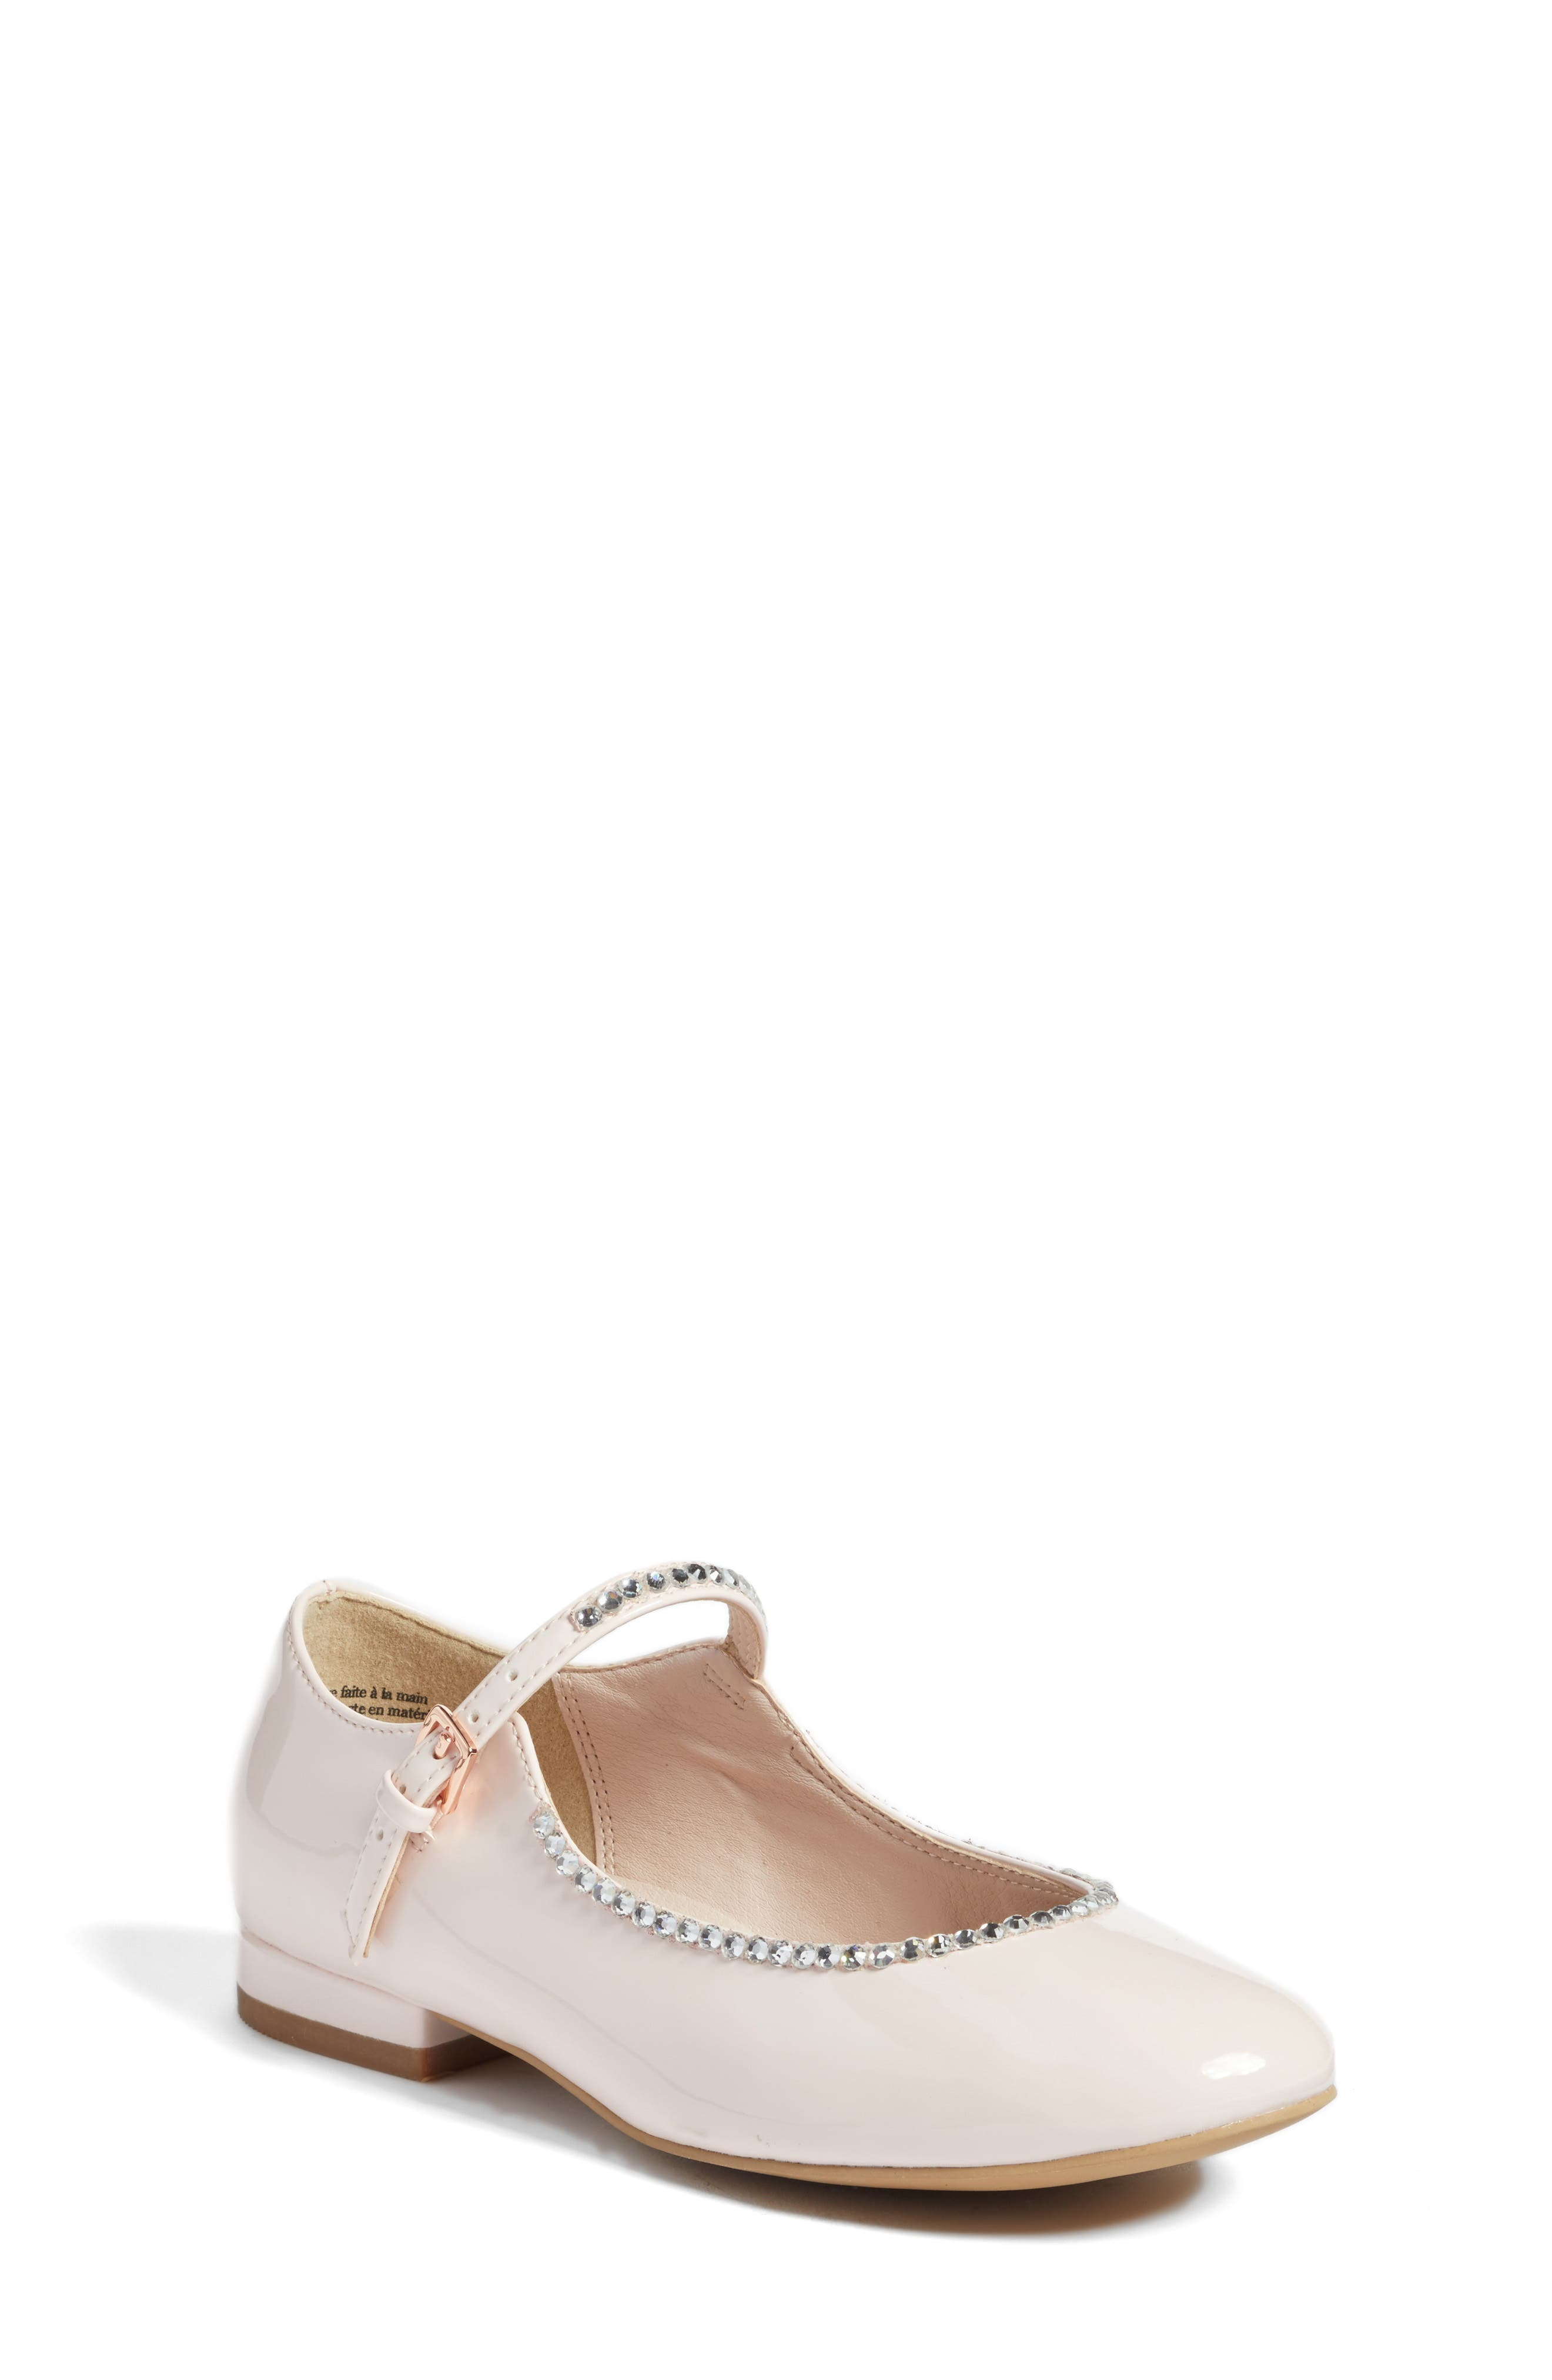 Harlow Embellished Mary Jane,                         Main,                         color, Pale Pink Faux Patent